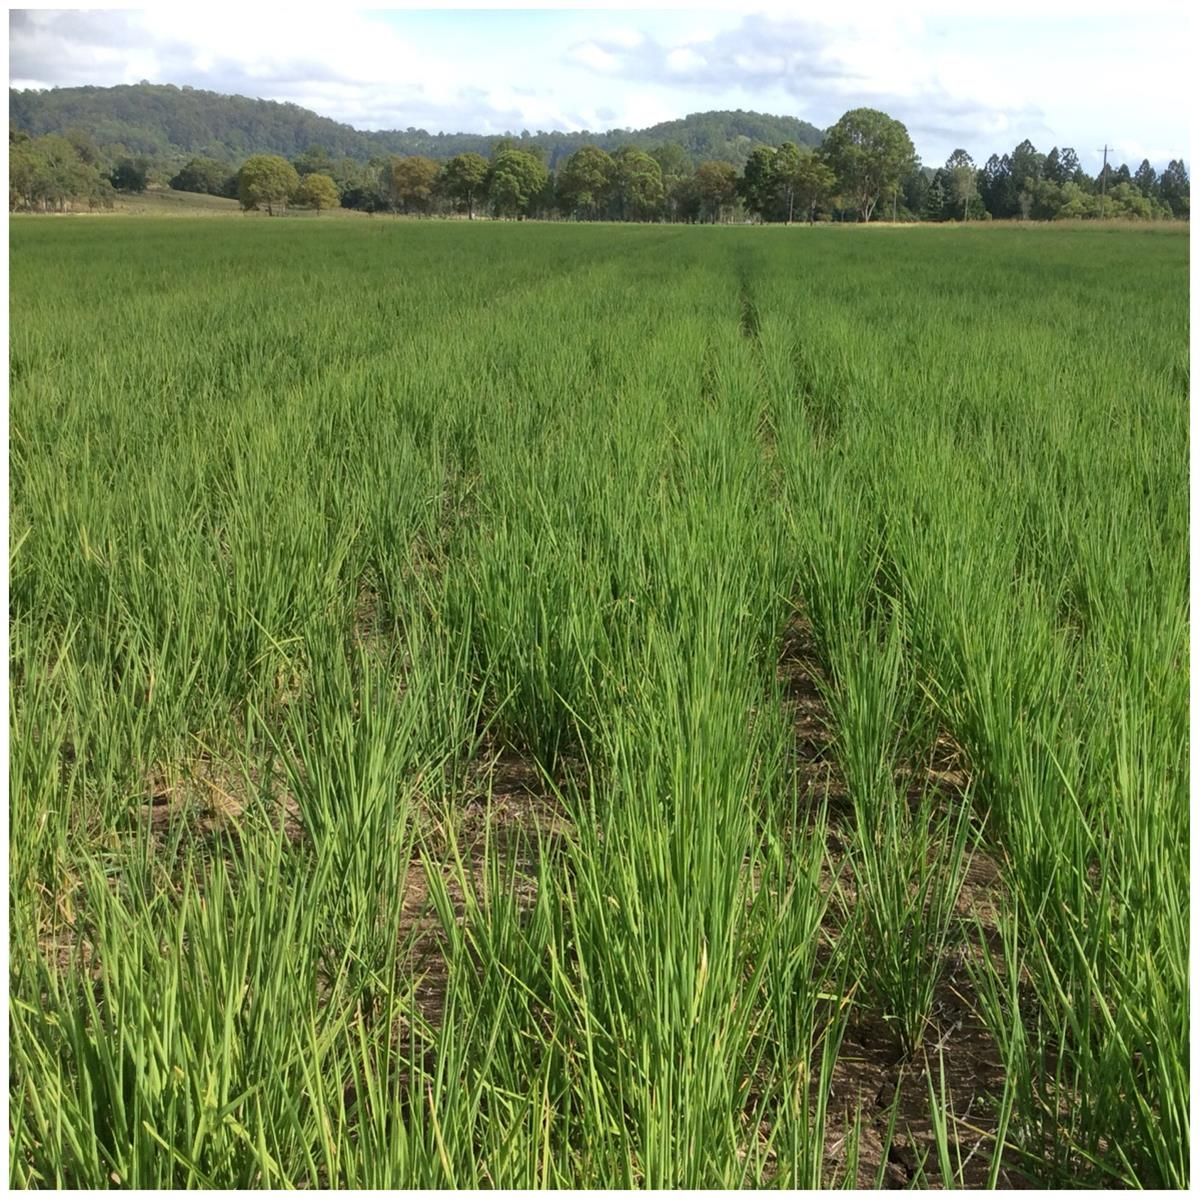 Dryland rice relies only on natural rainfall. It is not irrigated.